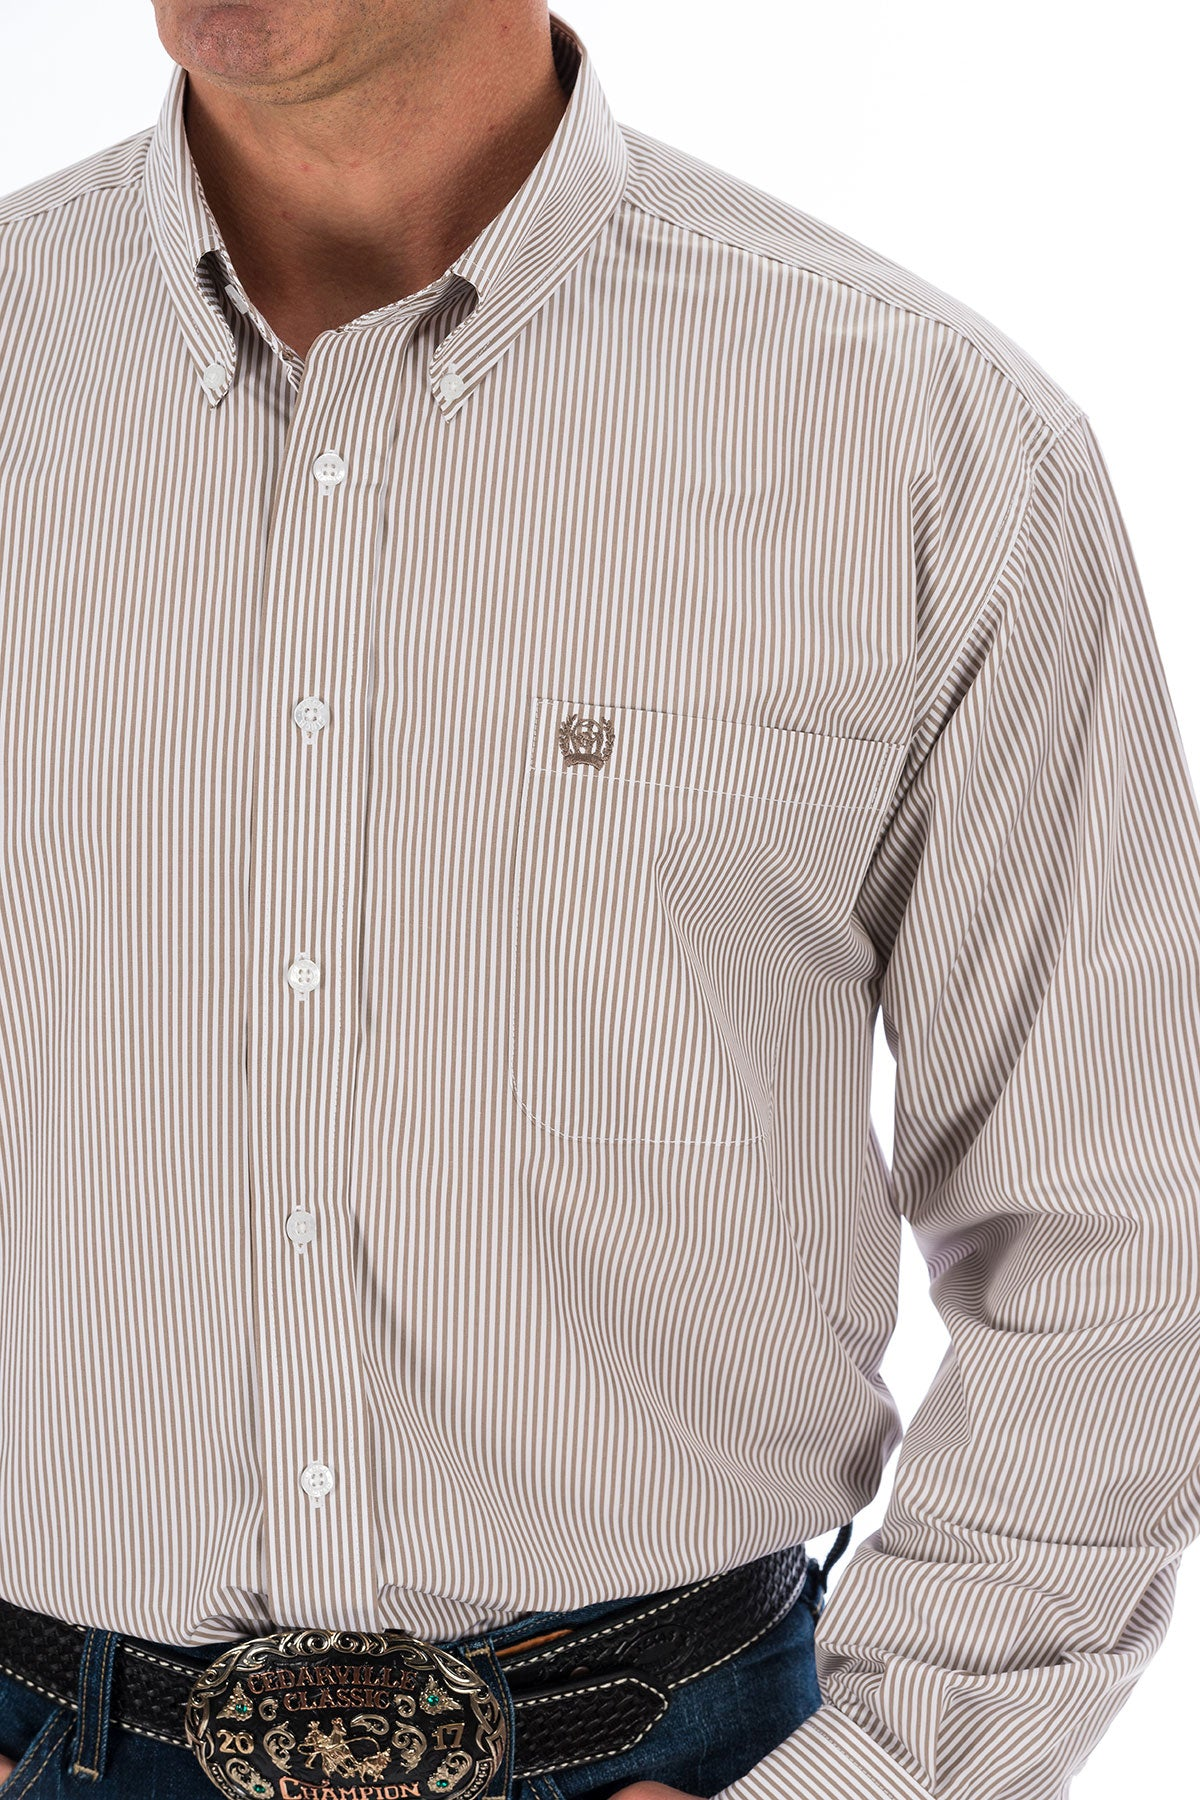 Cinch Men's Khaki Stripe Button Up Shirt